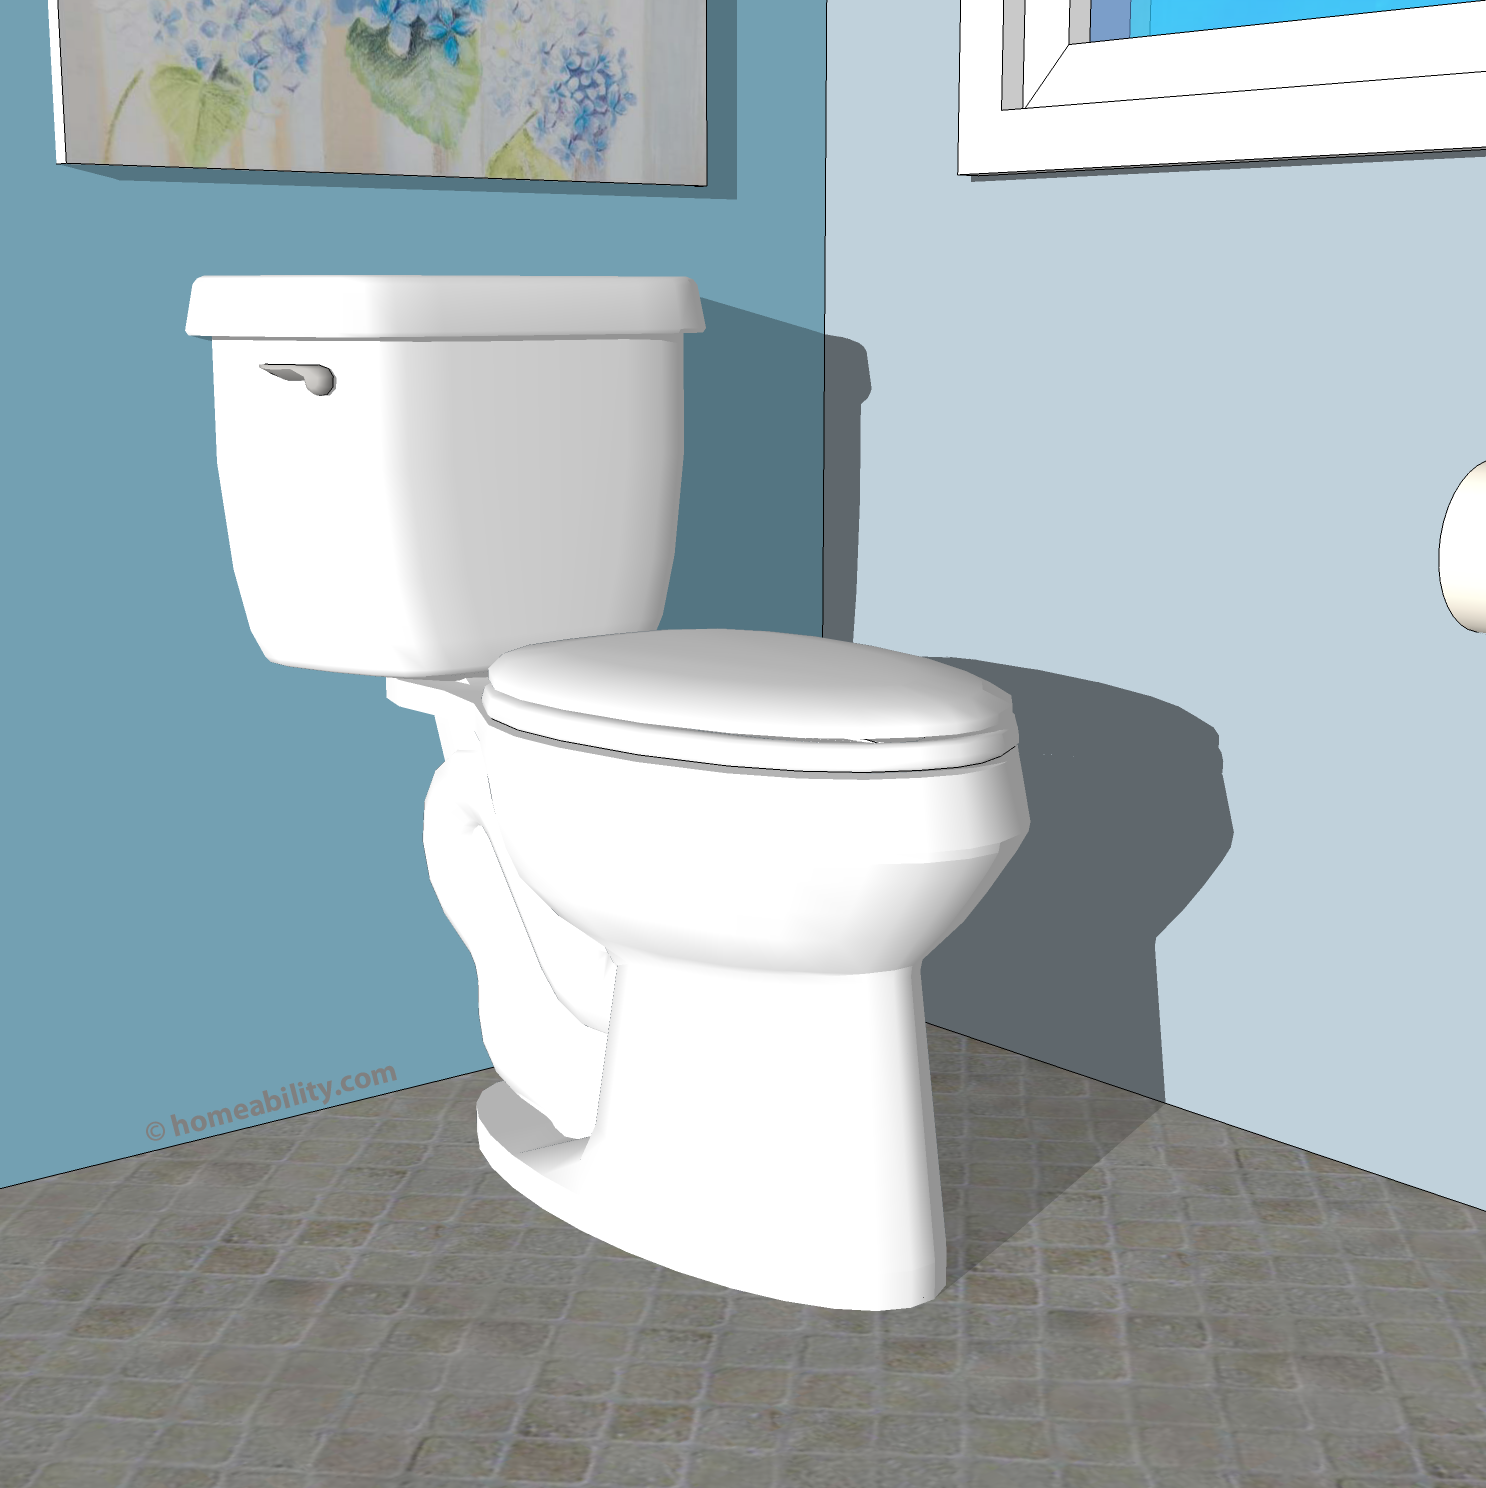 Toilets for Disabled Person: Which type is Best? | homeability.com